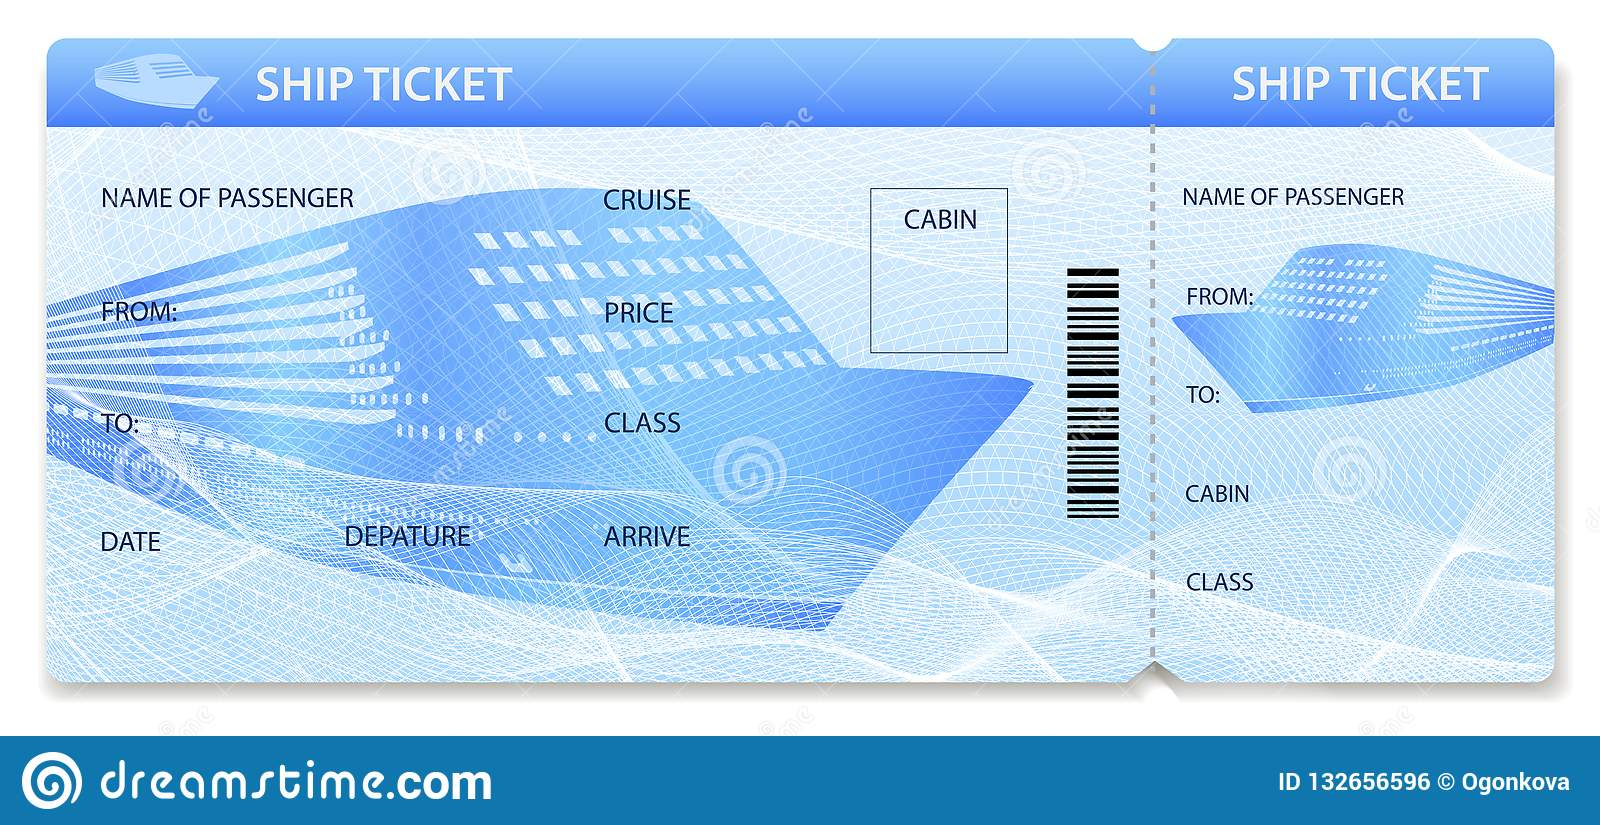 vector ship ticket template    layout  travel by cruise